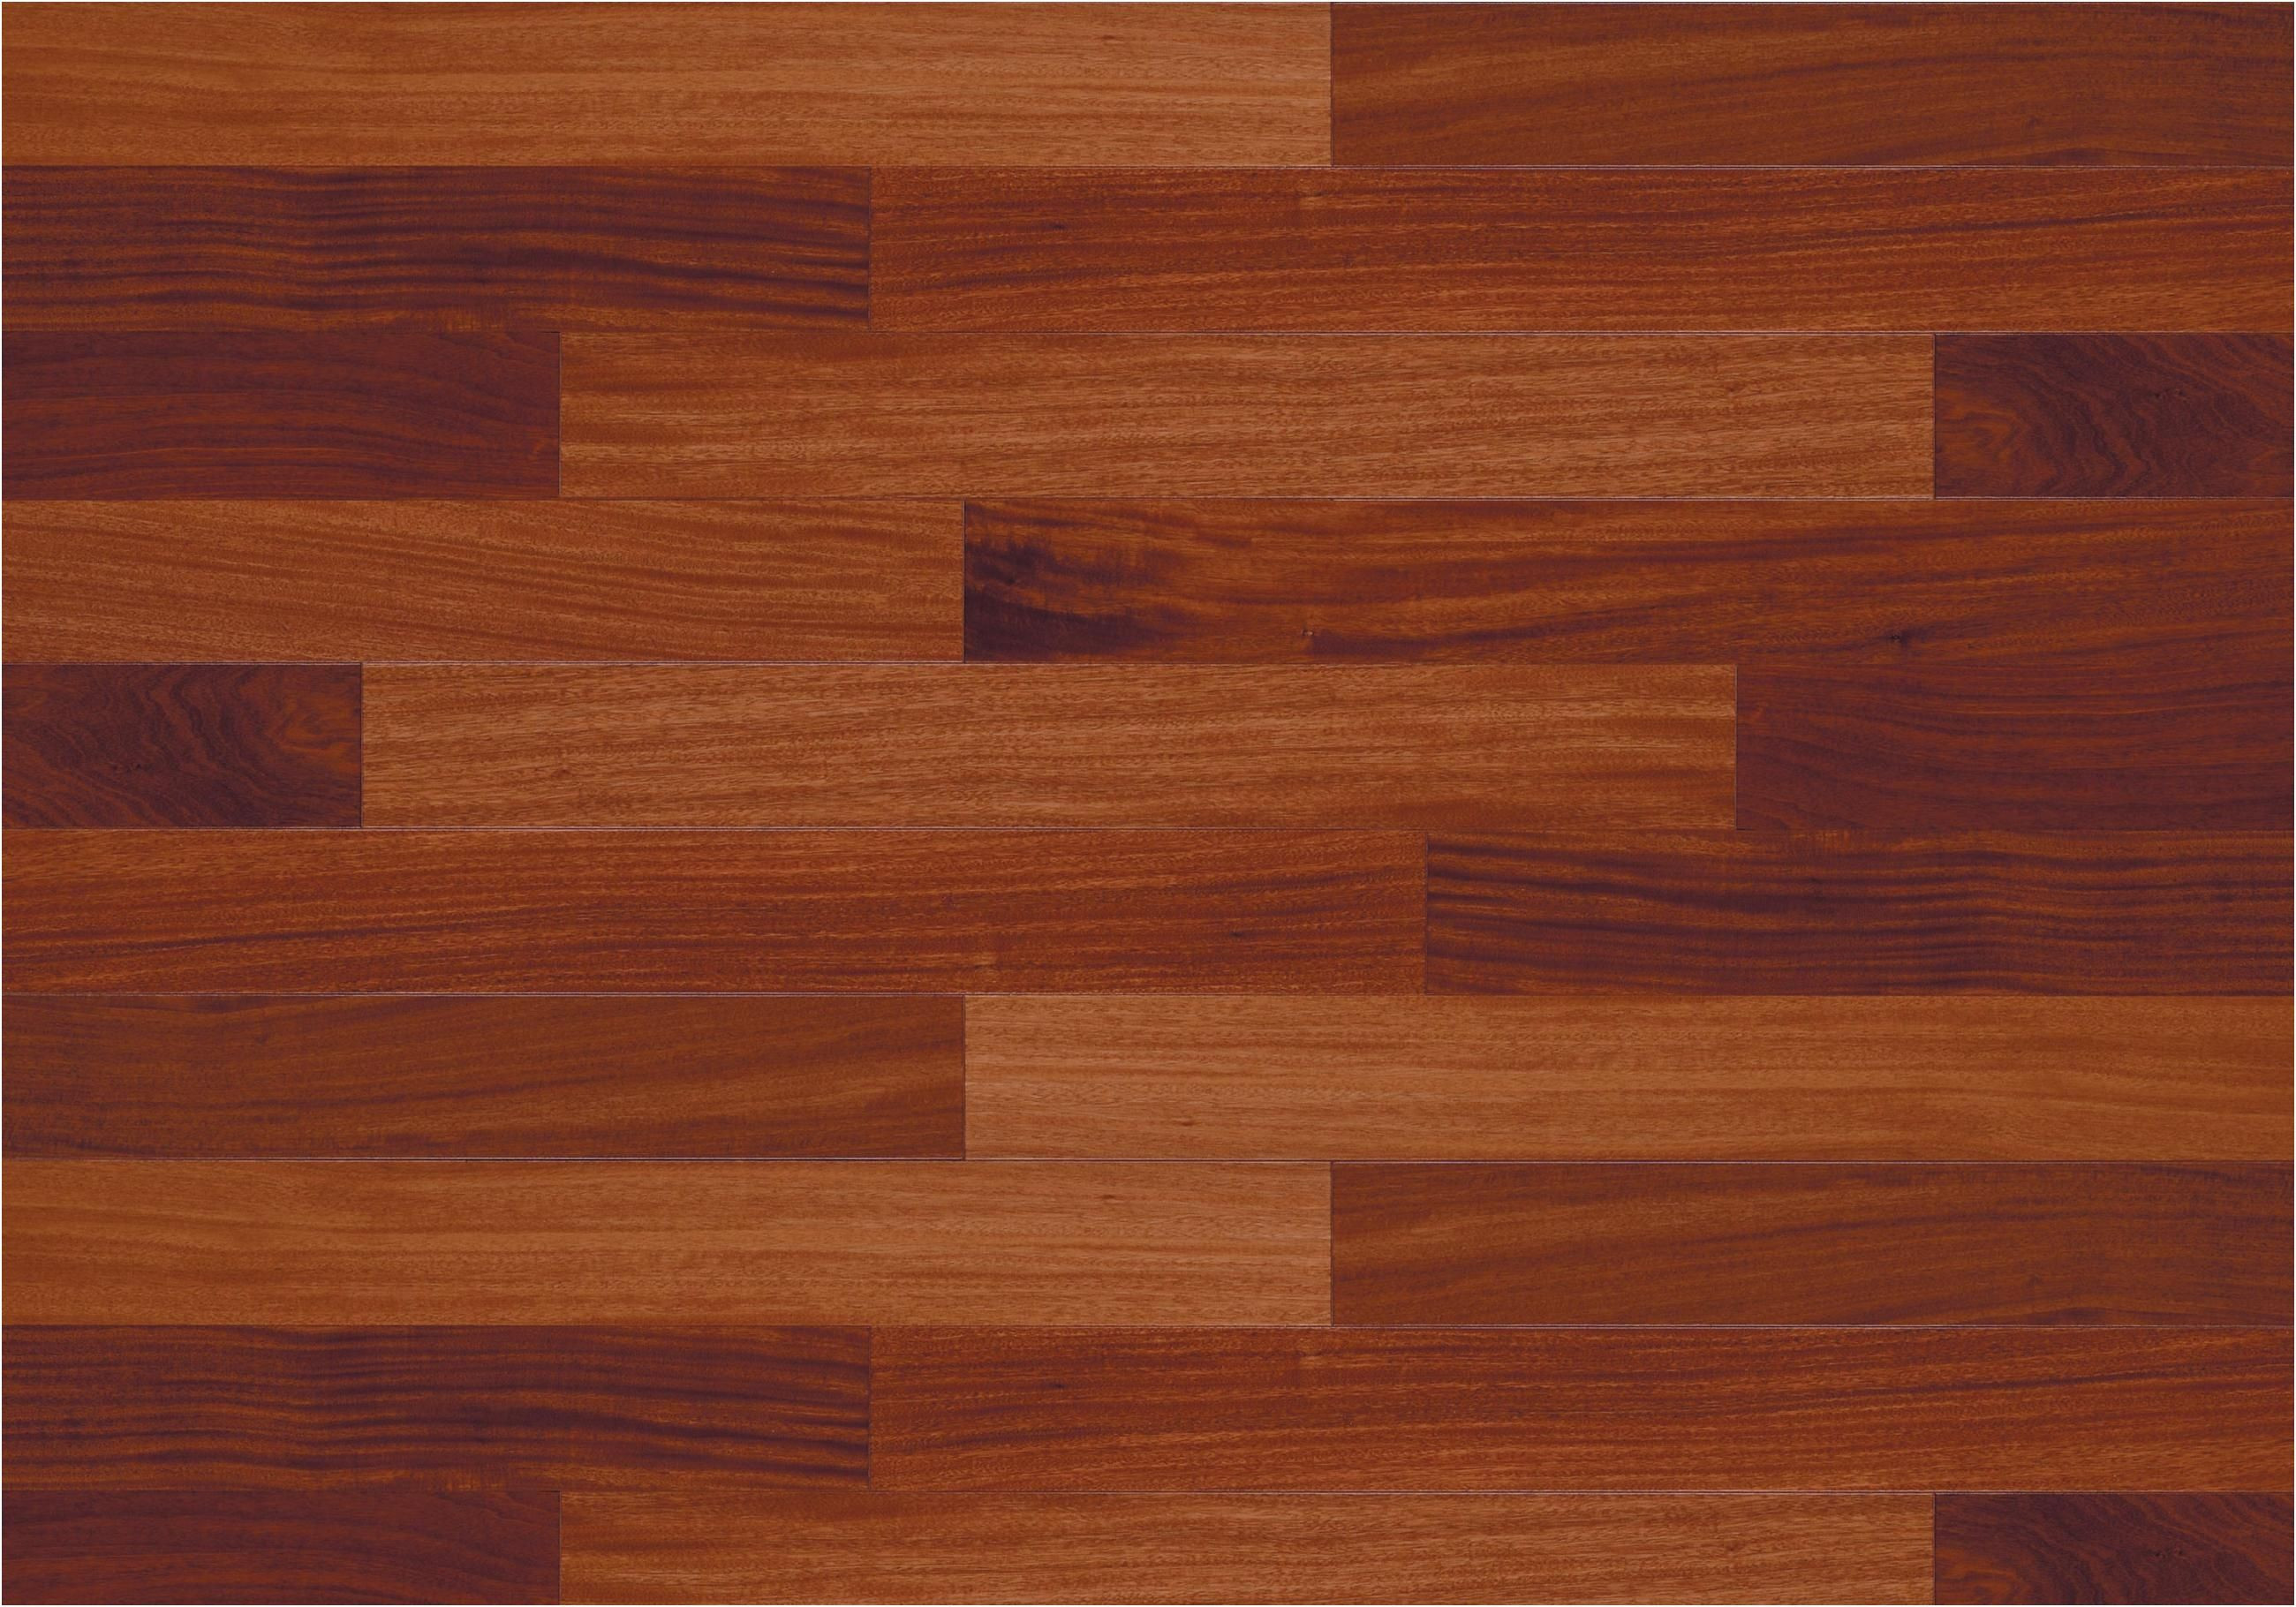 Pros and Cons Of Acacia Hardwood Flooring Of Lovely Click Lock Hardwood Floors Home Interior Design with Regard to 40 Lock Hardwood Flooring Pros and Cons Lovely Click Lock Hardwood Floors